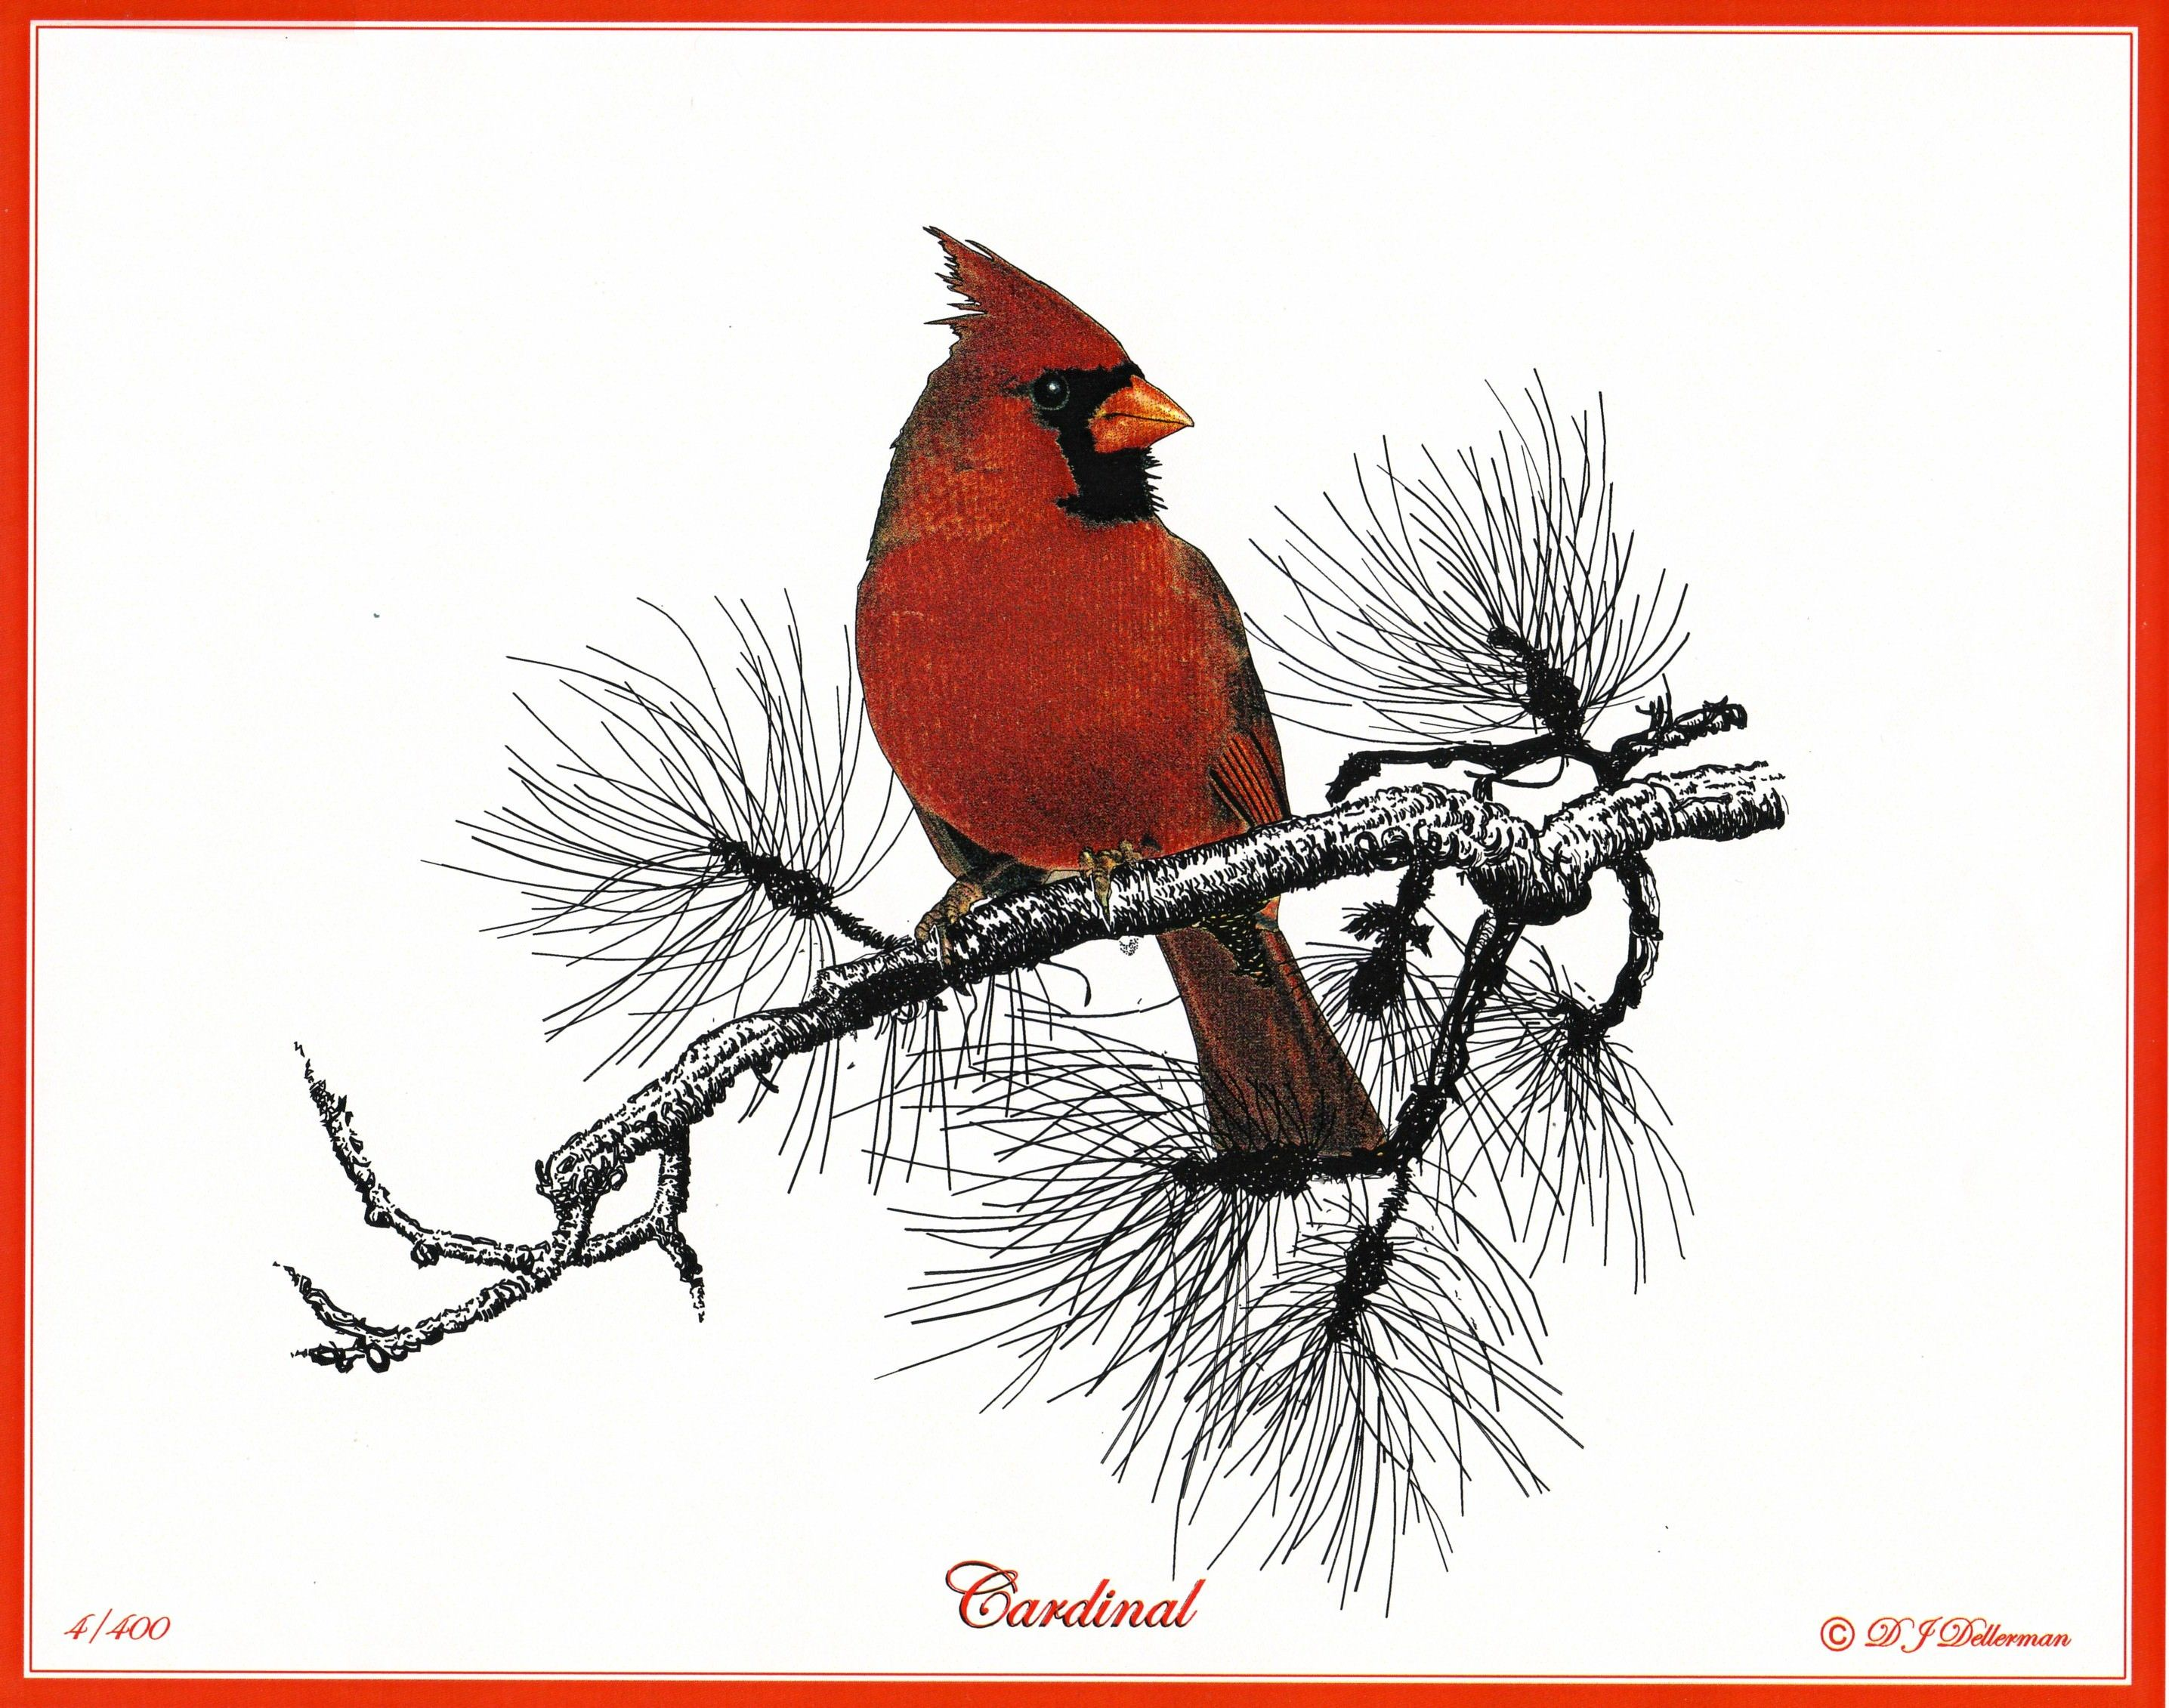 Cardinal-Bird-Drawing.jpg (2871×2261) | Art inspirations ...